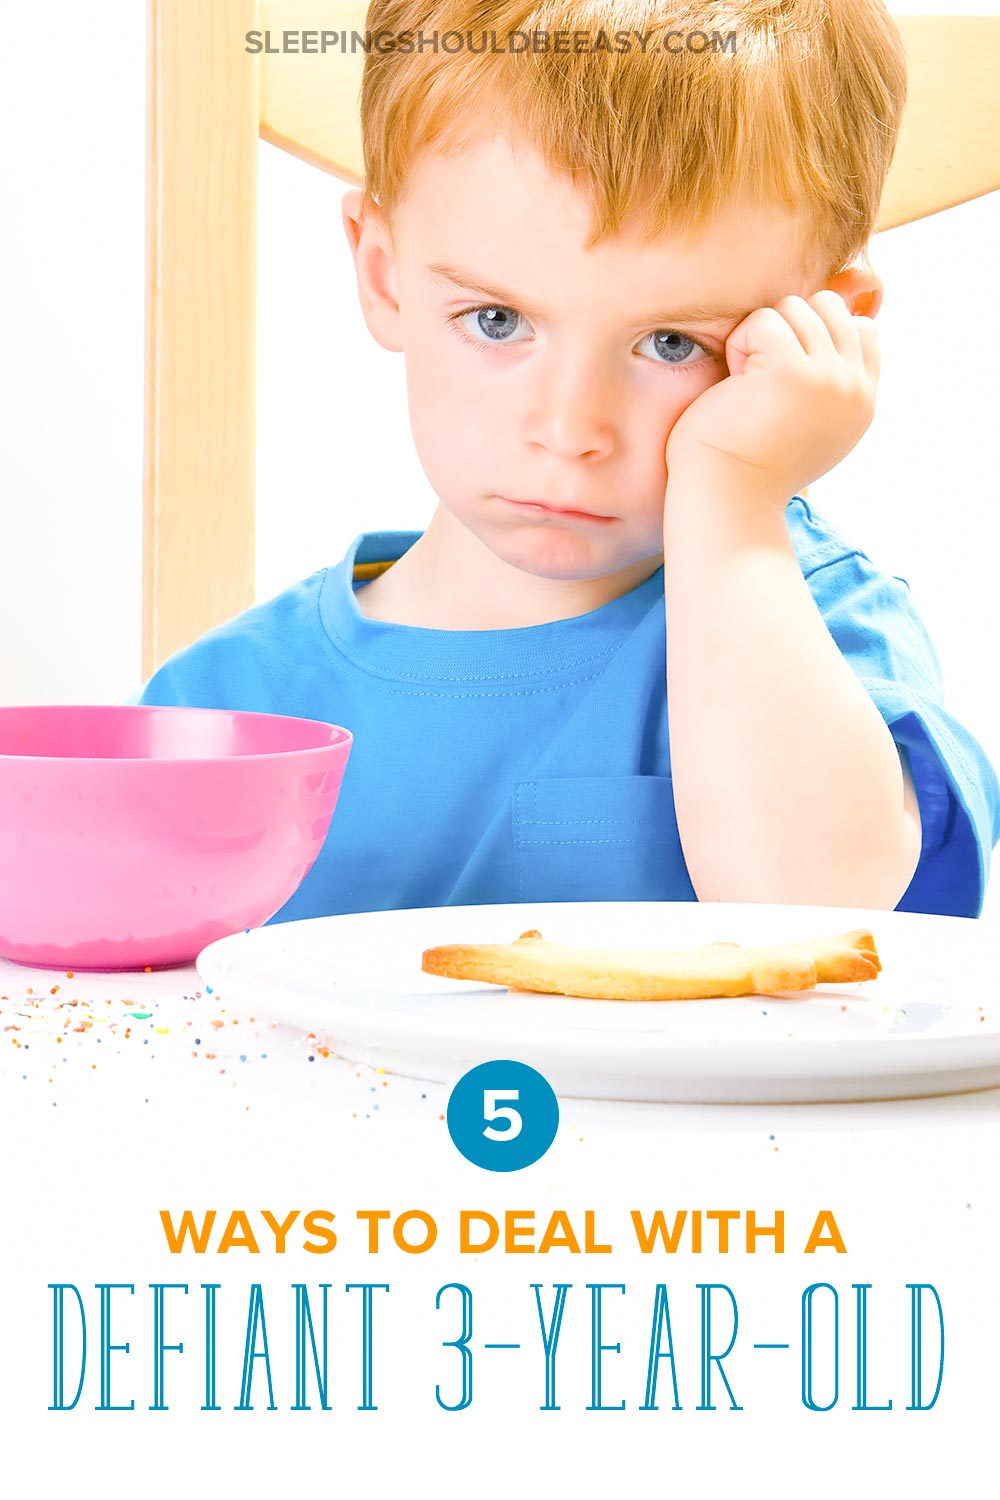 5 ways to deal with a defiant 3 year old